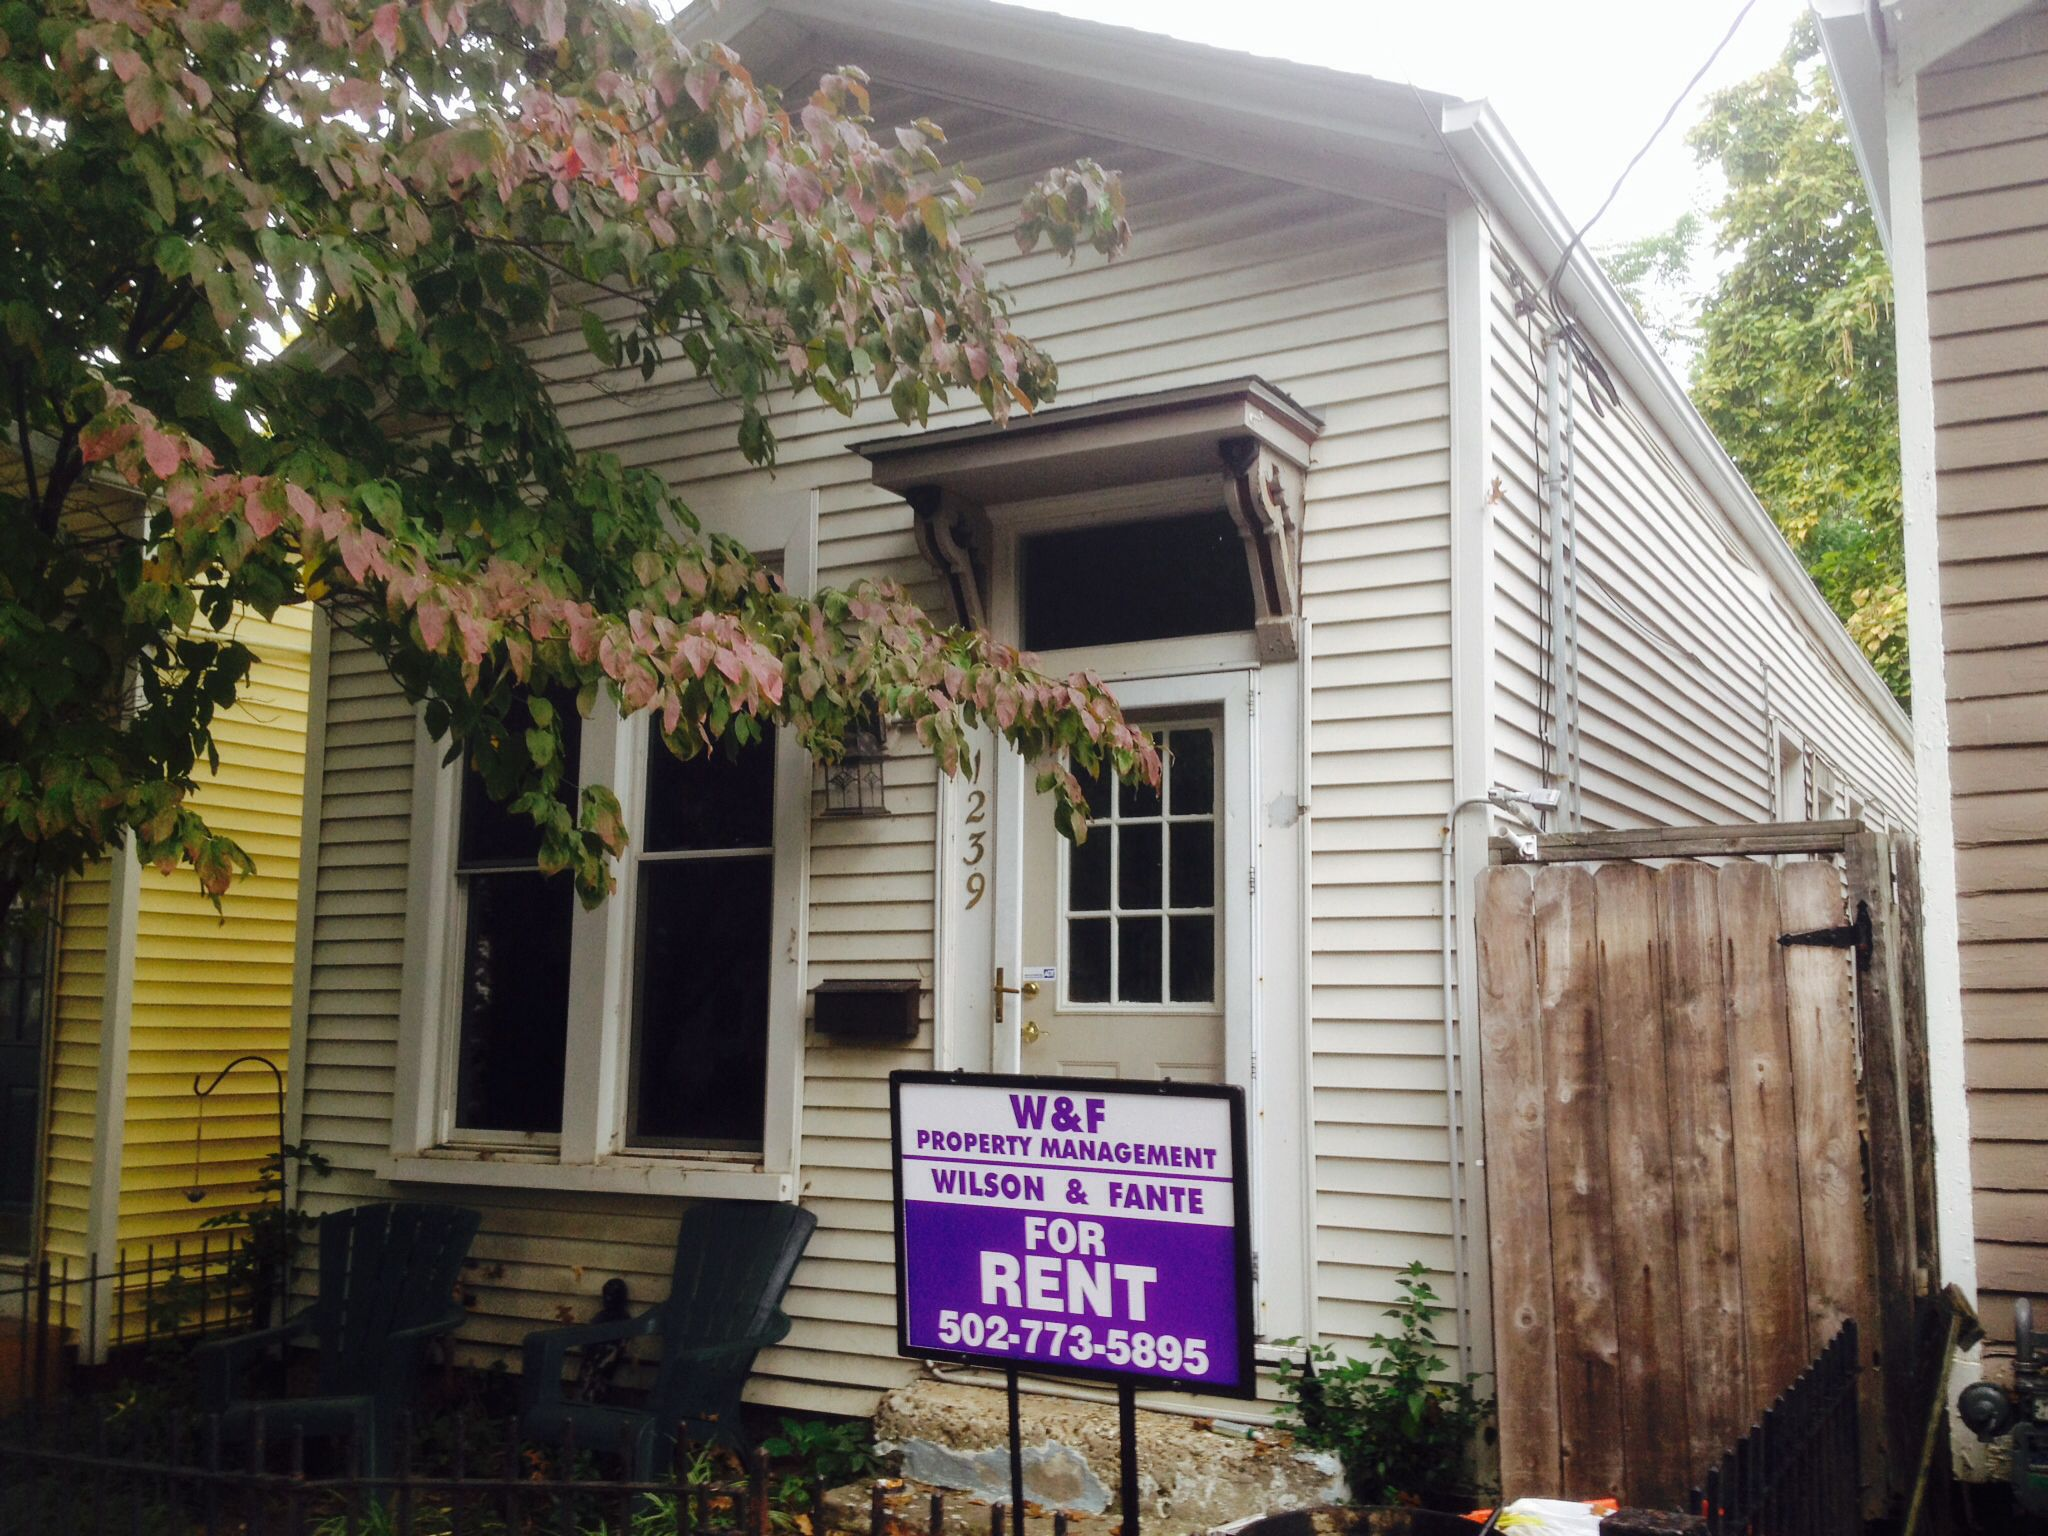 Wilson & Fante Property MGMT Just off Baxter with a